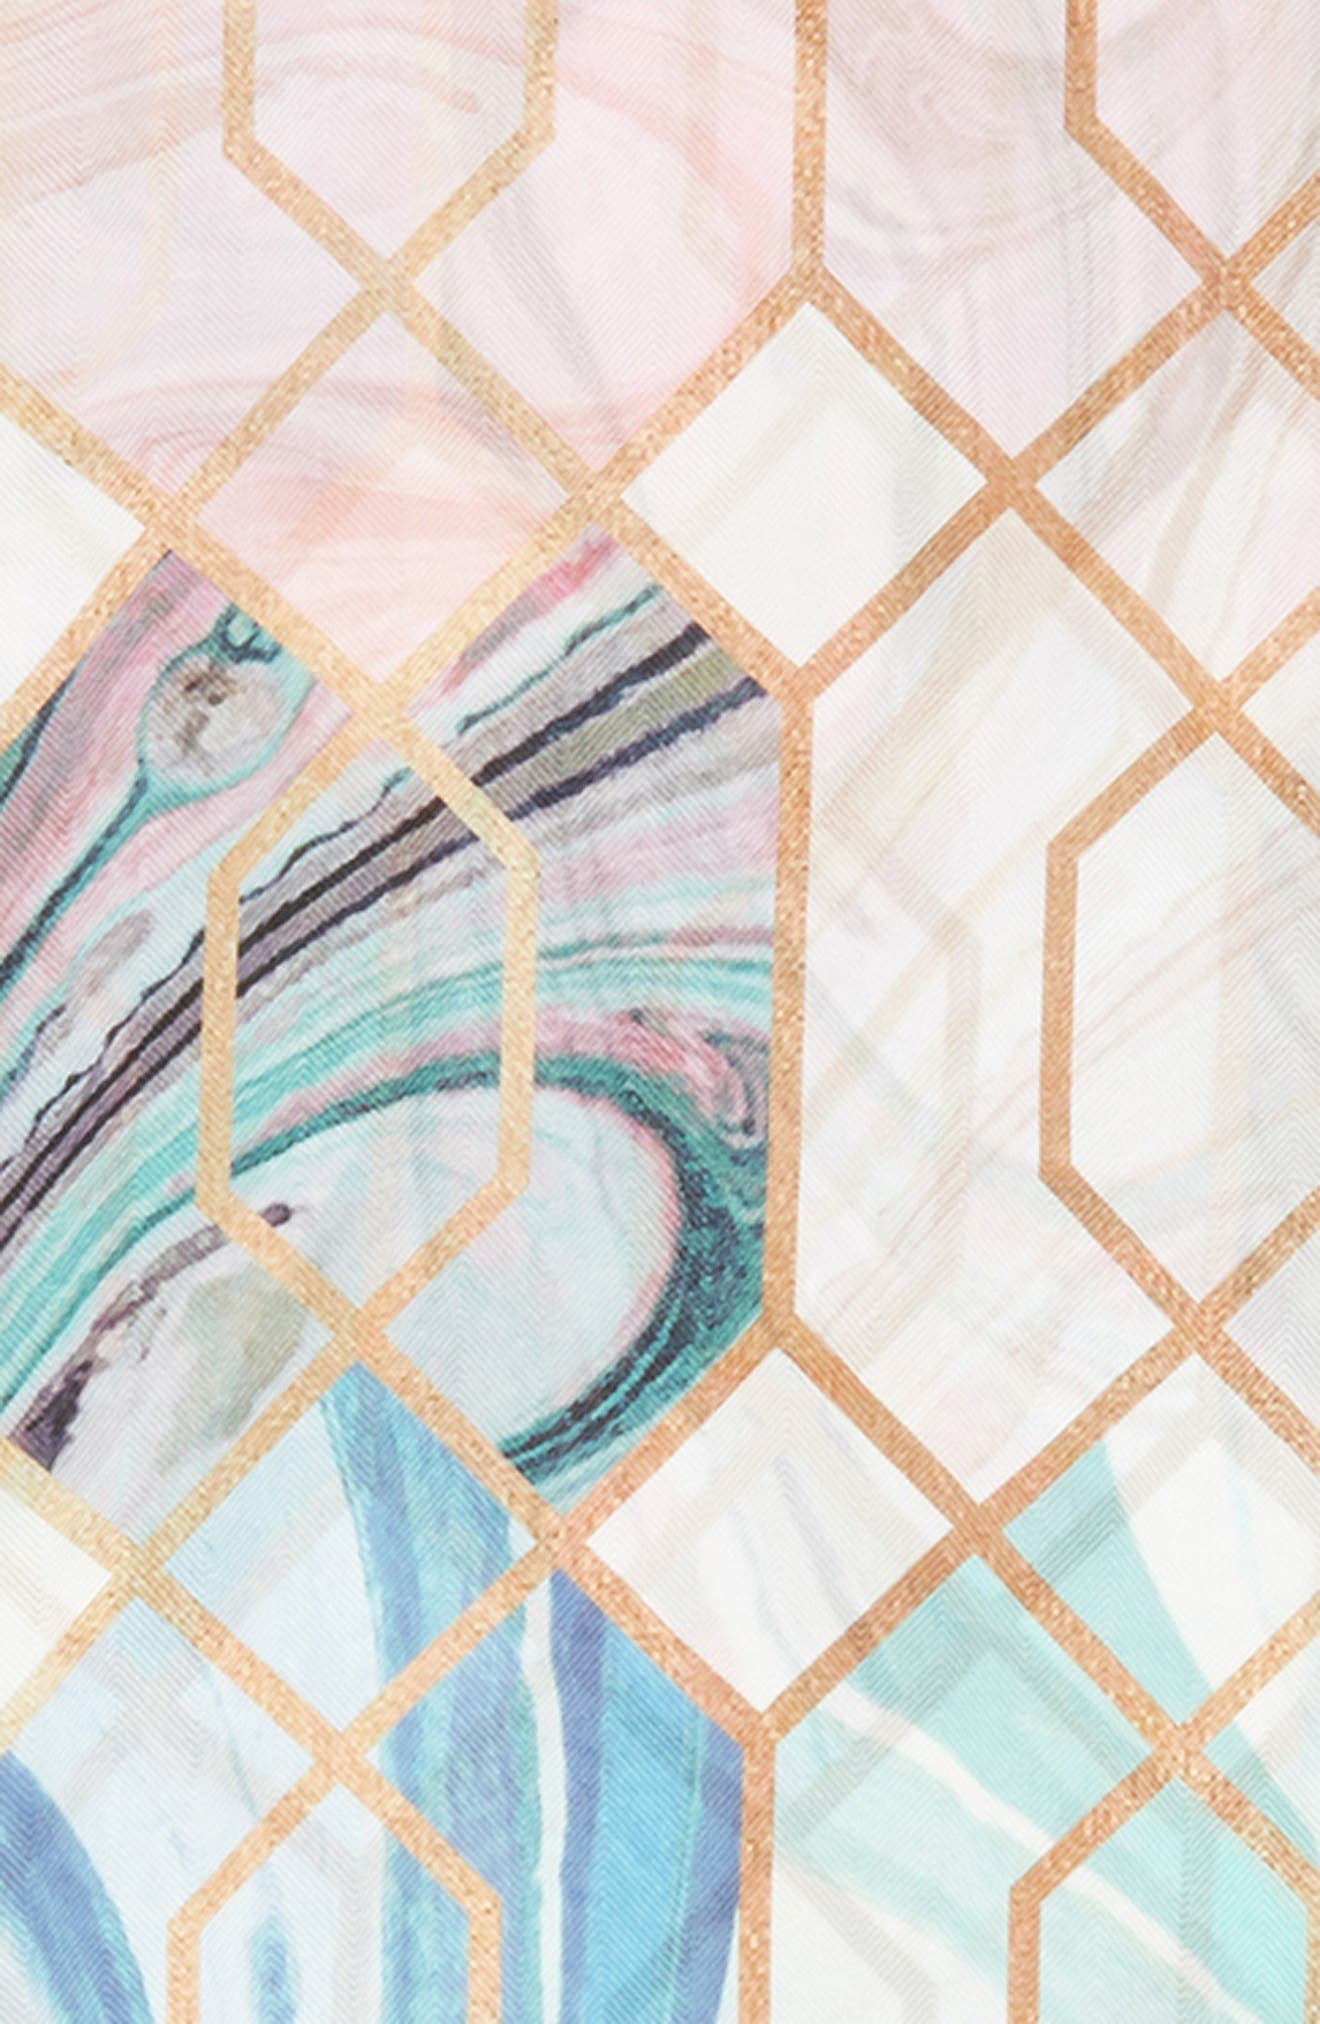 Adeelee - Sea of Clouds Silk Scarf,                             Alternate thumbnail 4, color,                             White